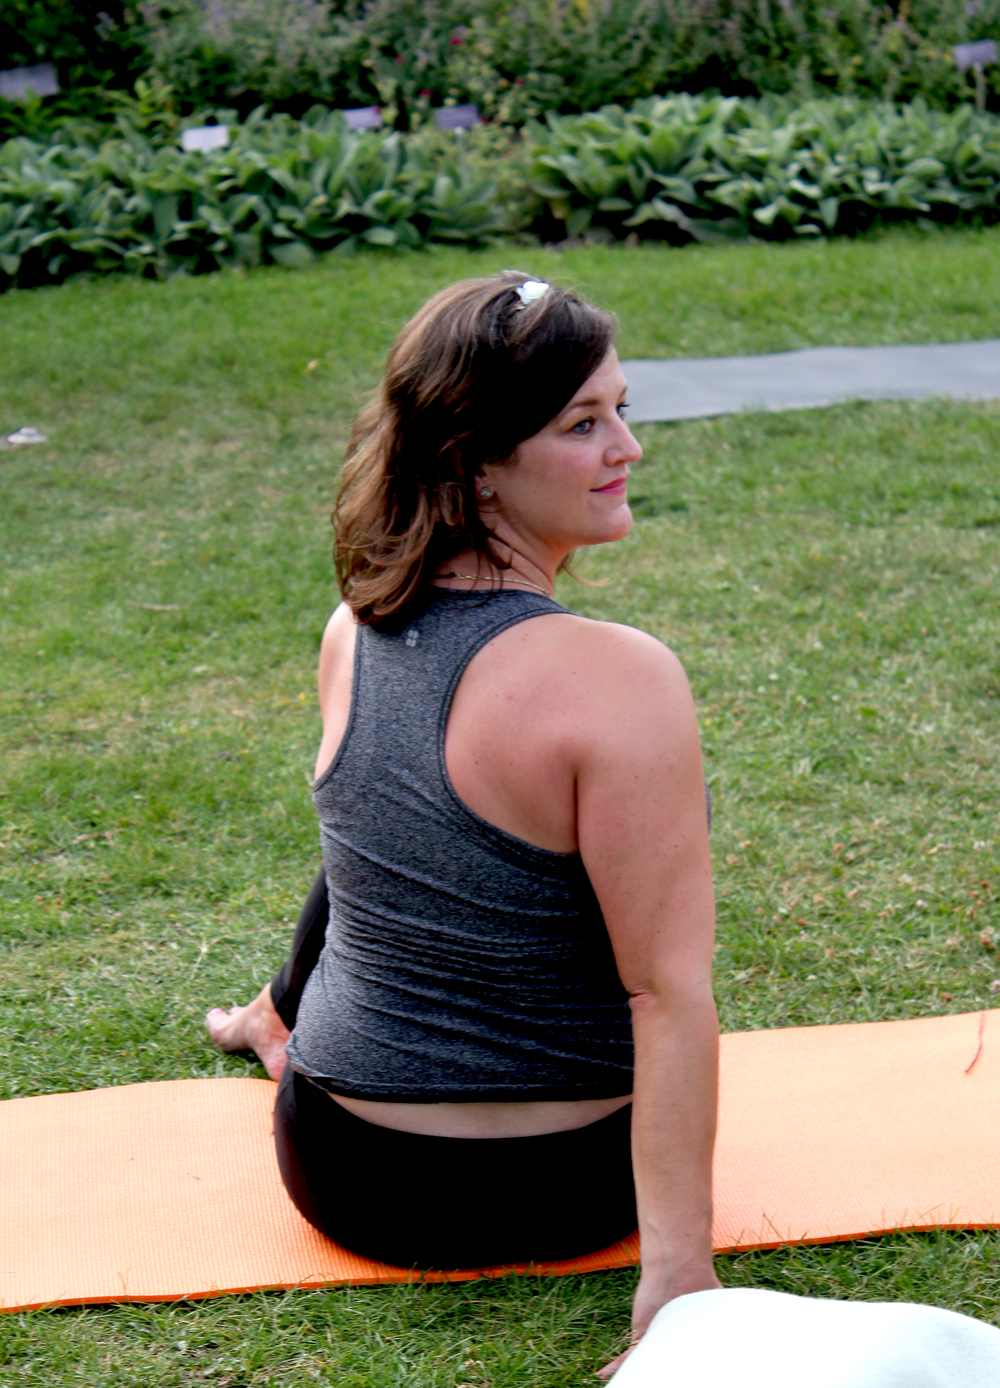 Yoga Summer at Toronto Botanical Gardens with Janet Crocken